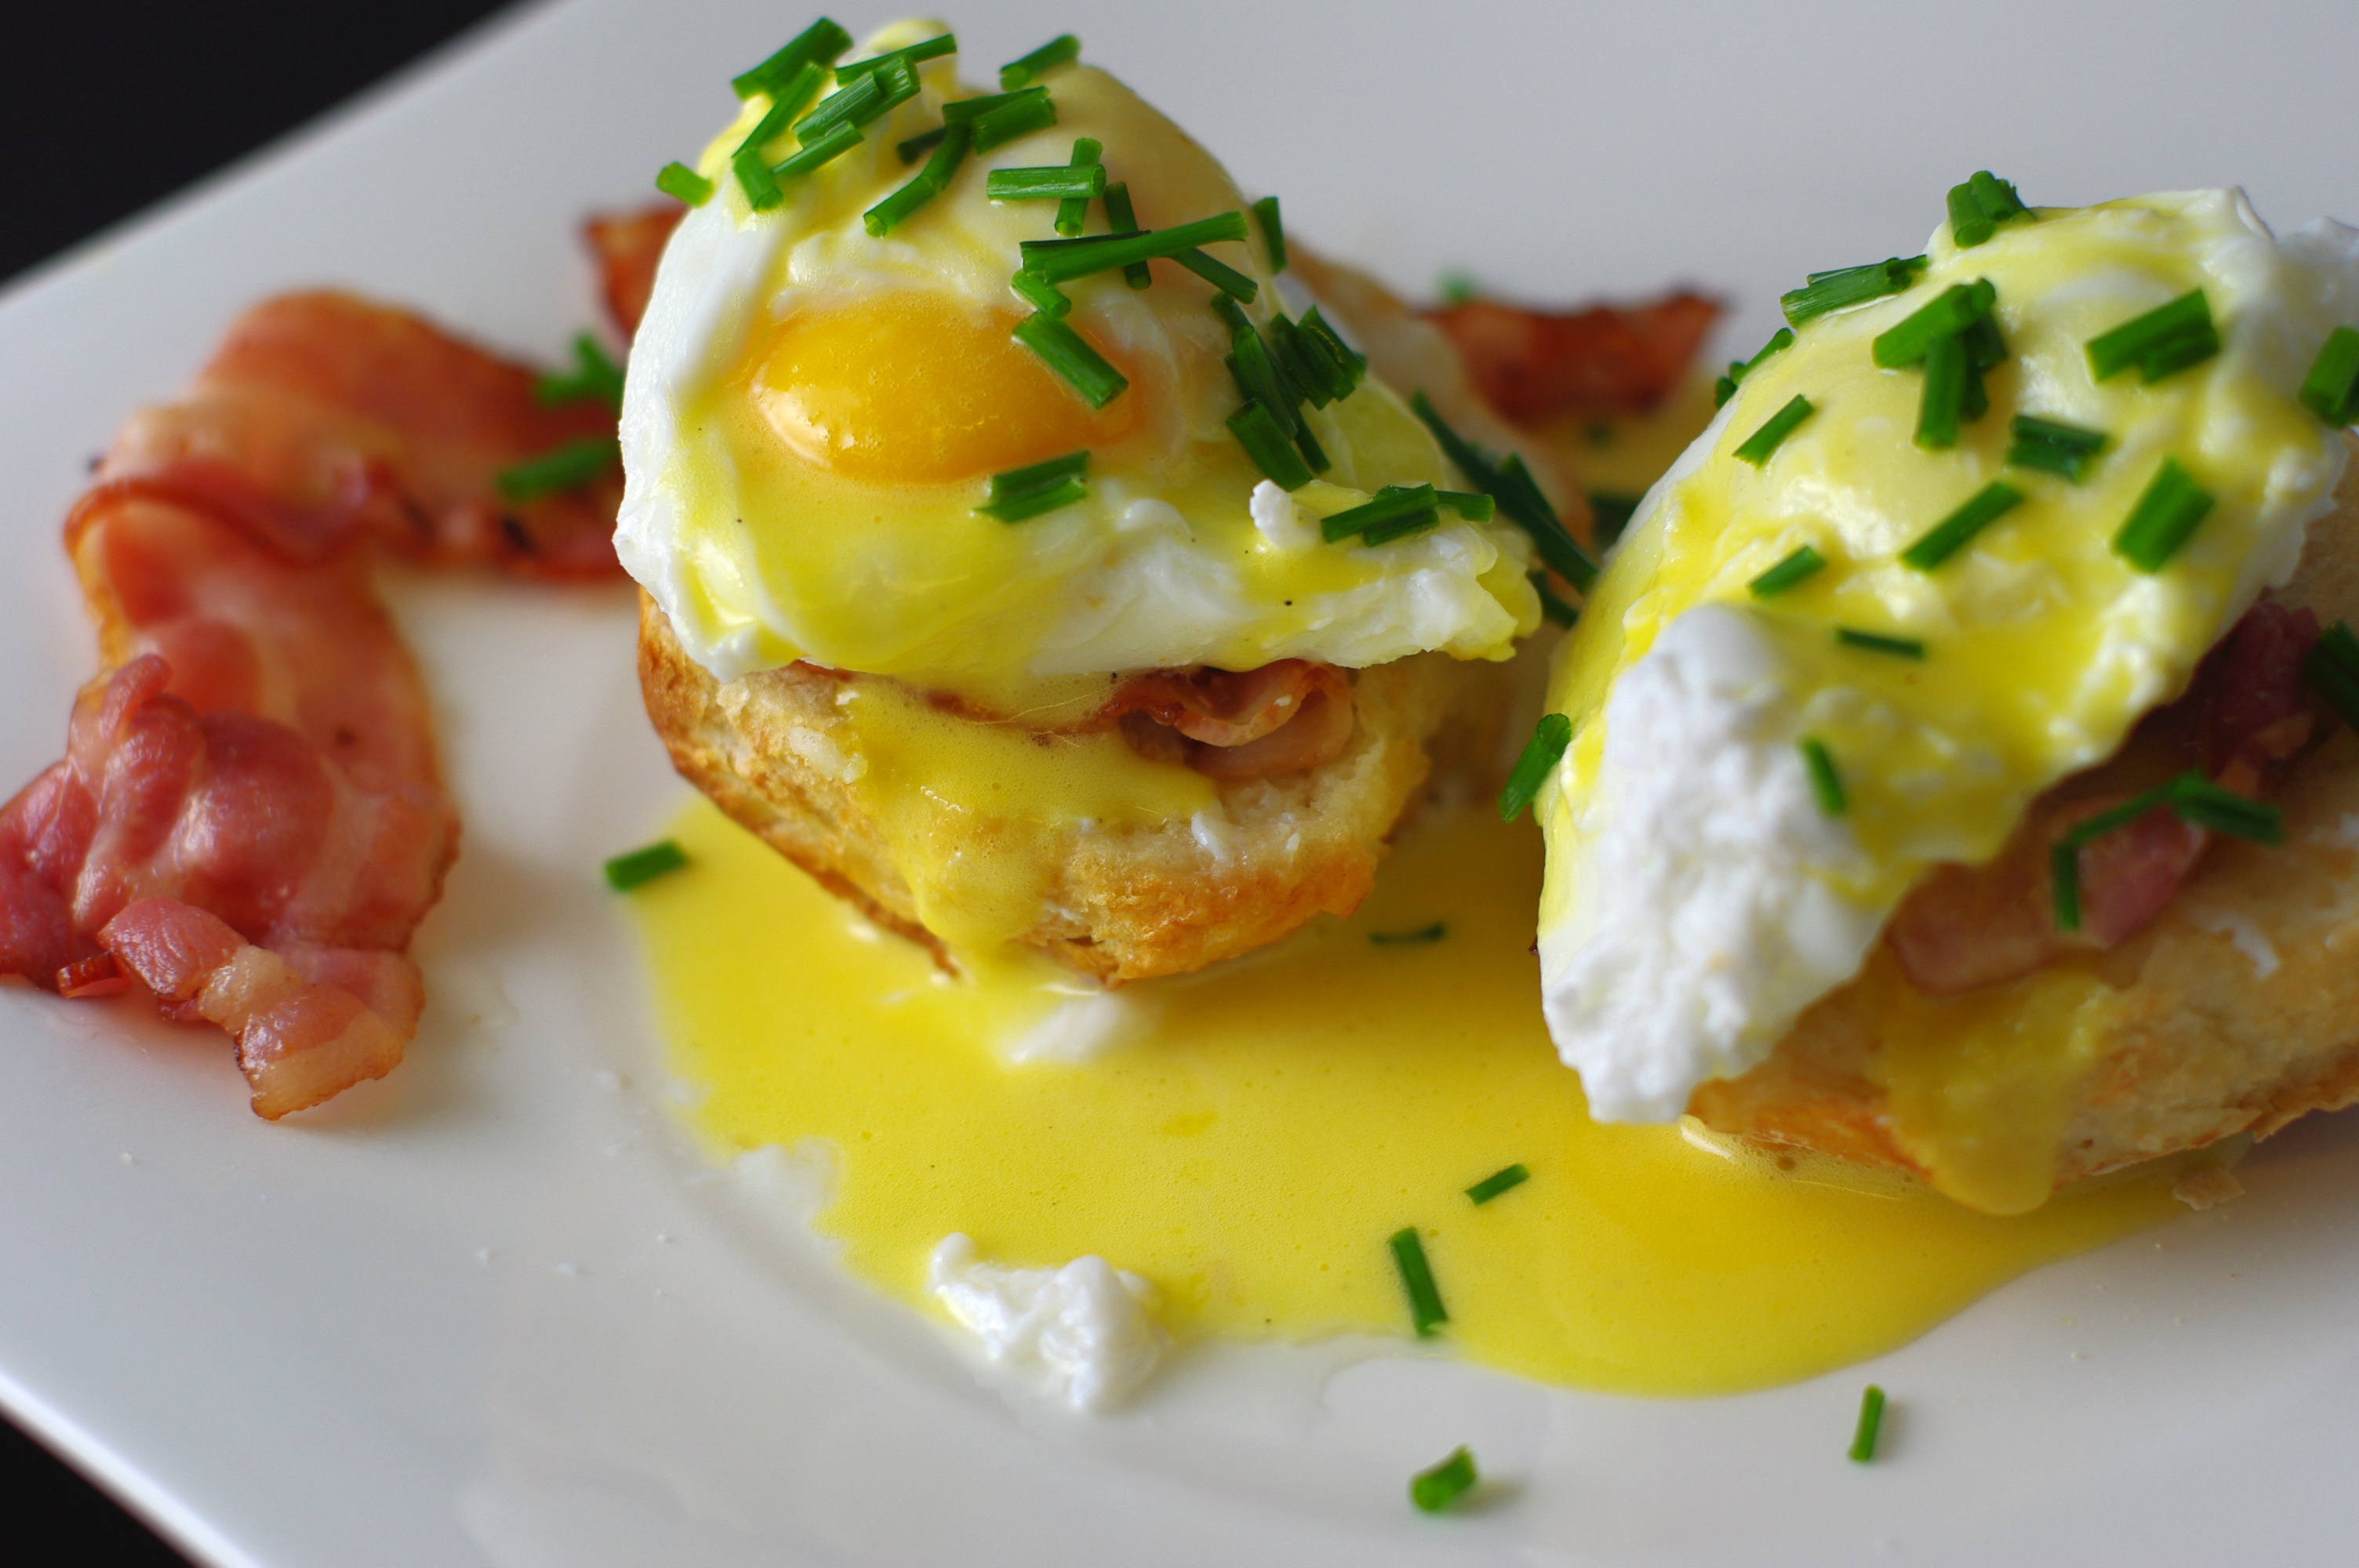 File:Eggs benedict.jpg - Wikimedia Commons